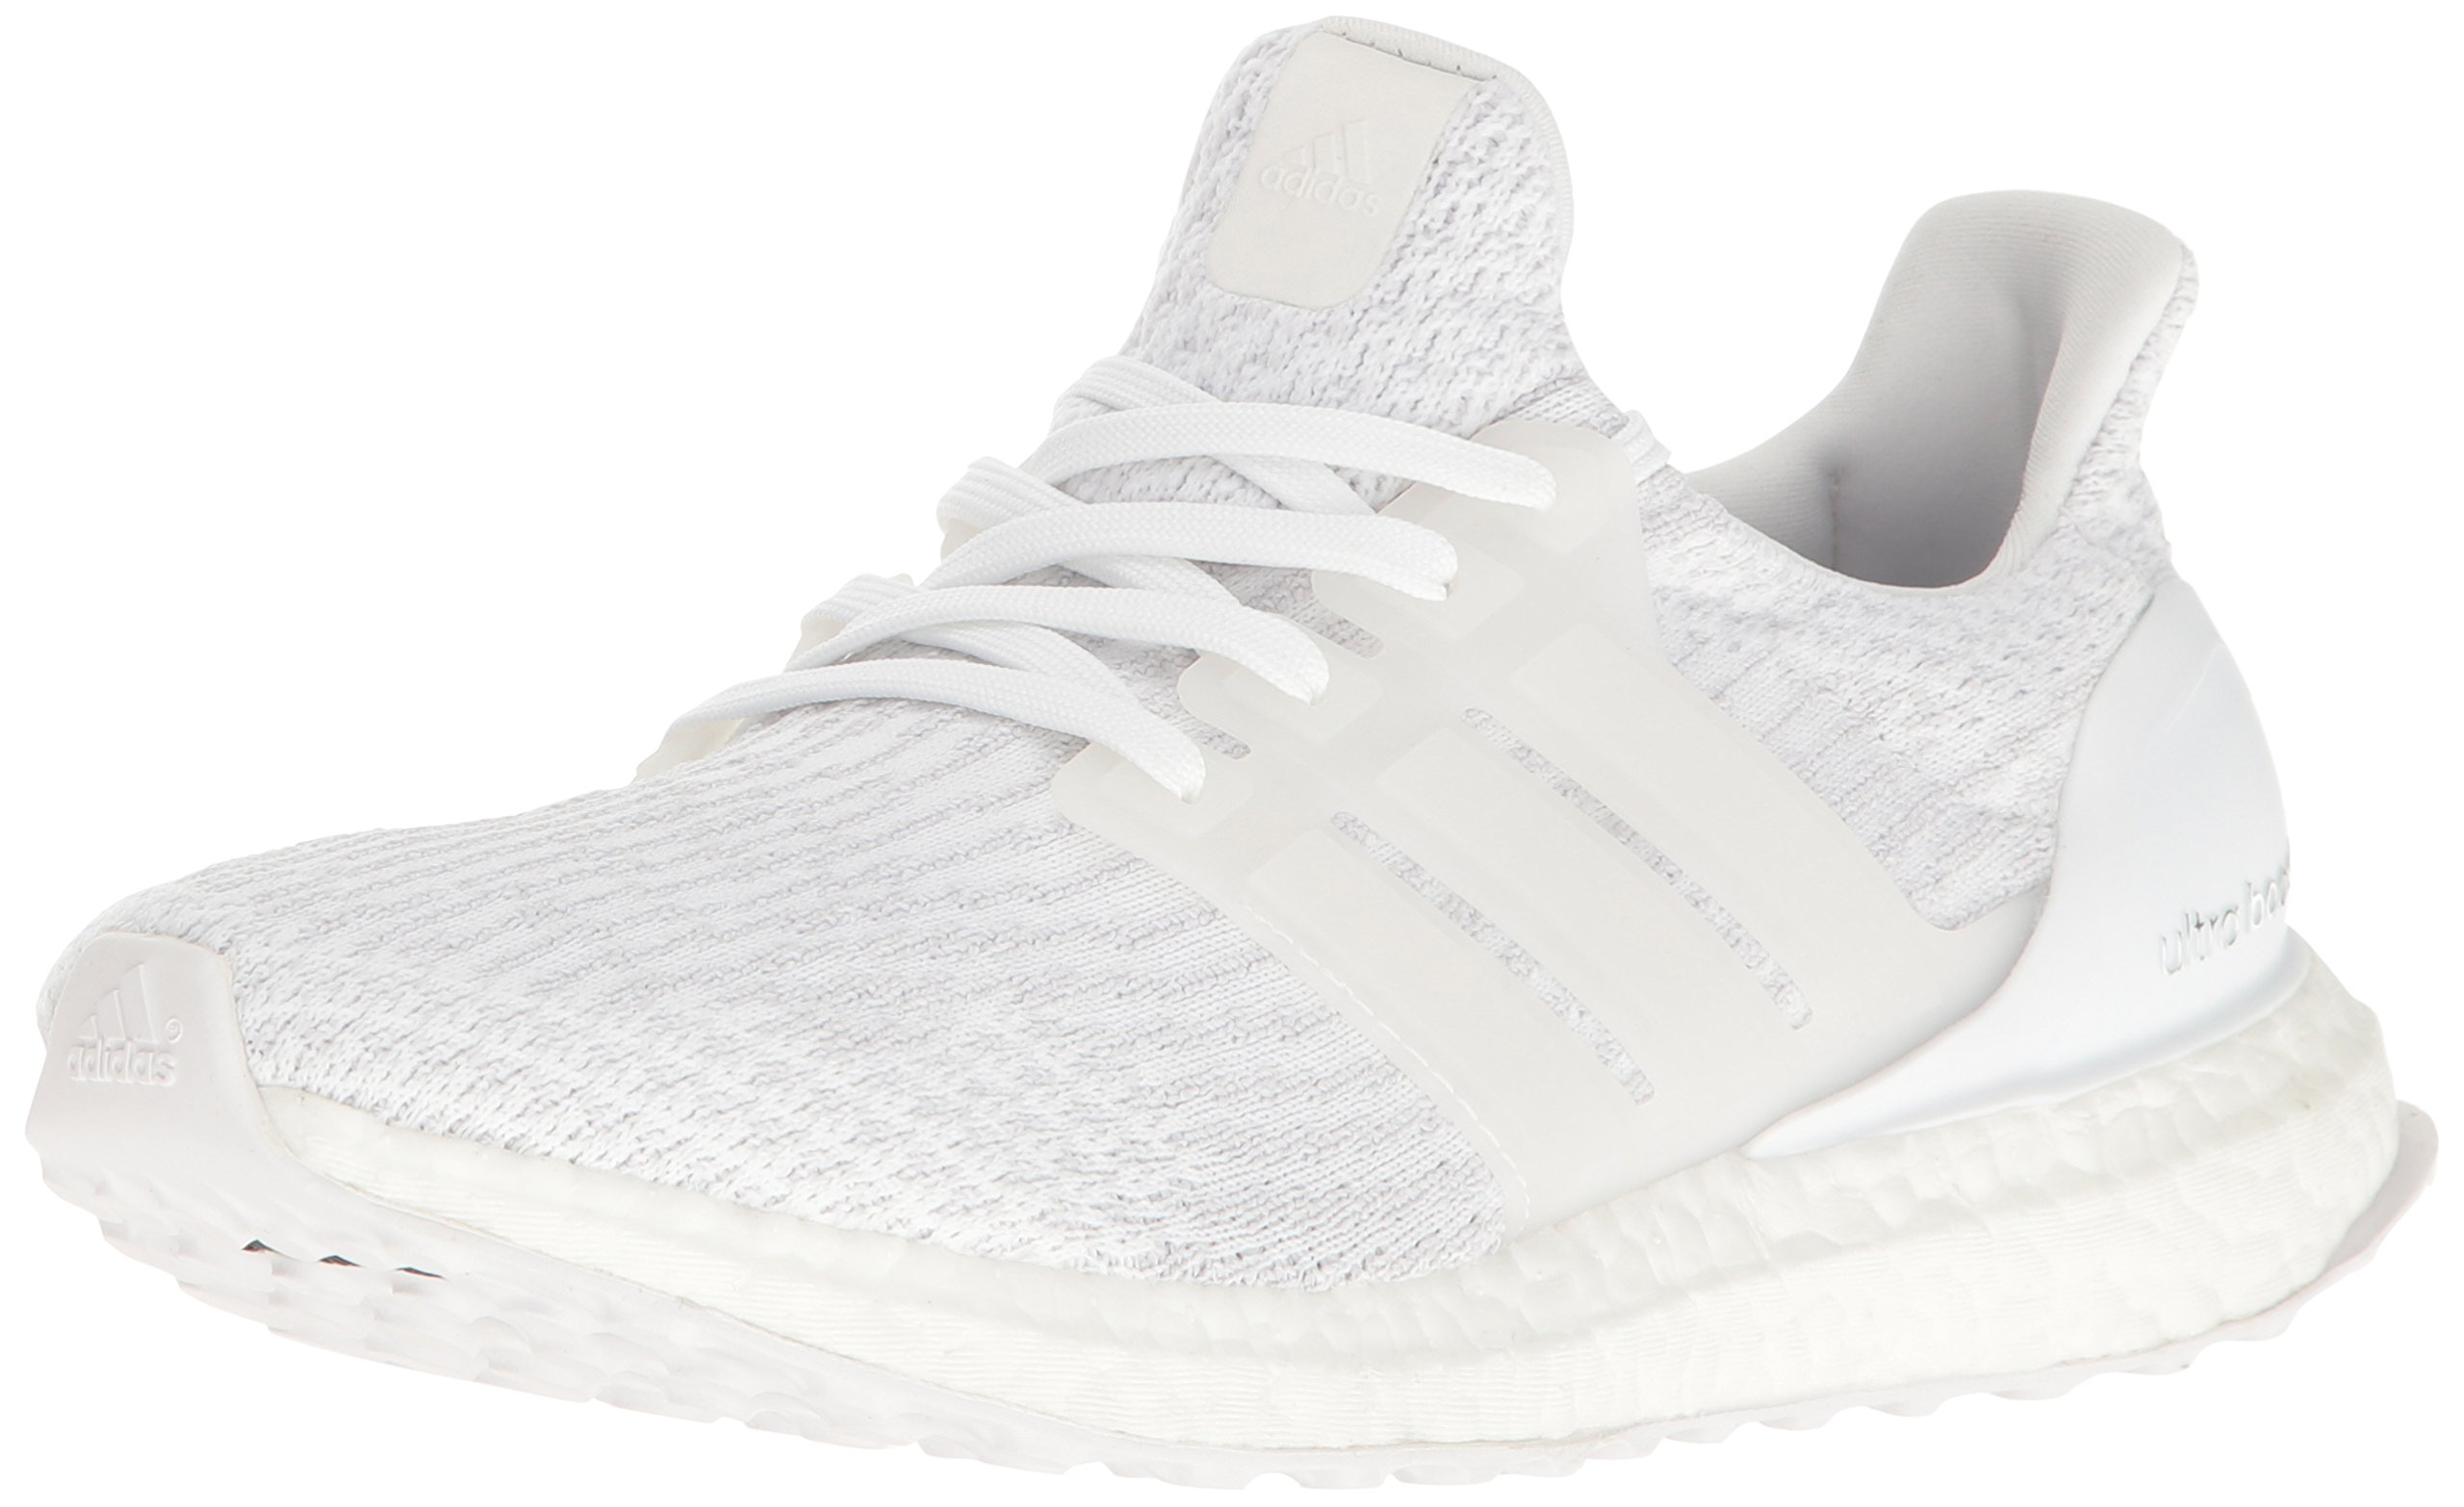 adidas Women's Ultraboost w Running Shoe, WhiteWhiteCrystal White, 8 M US